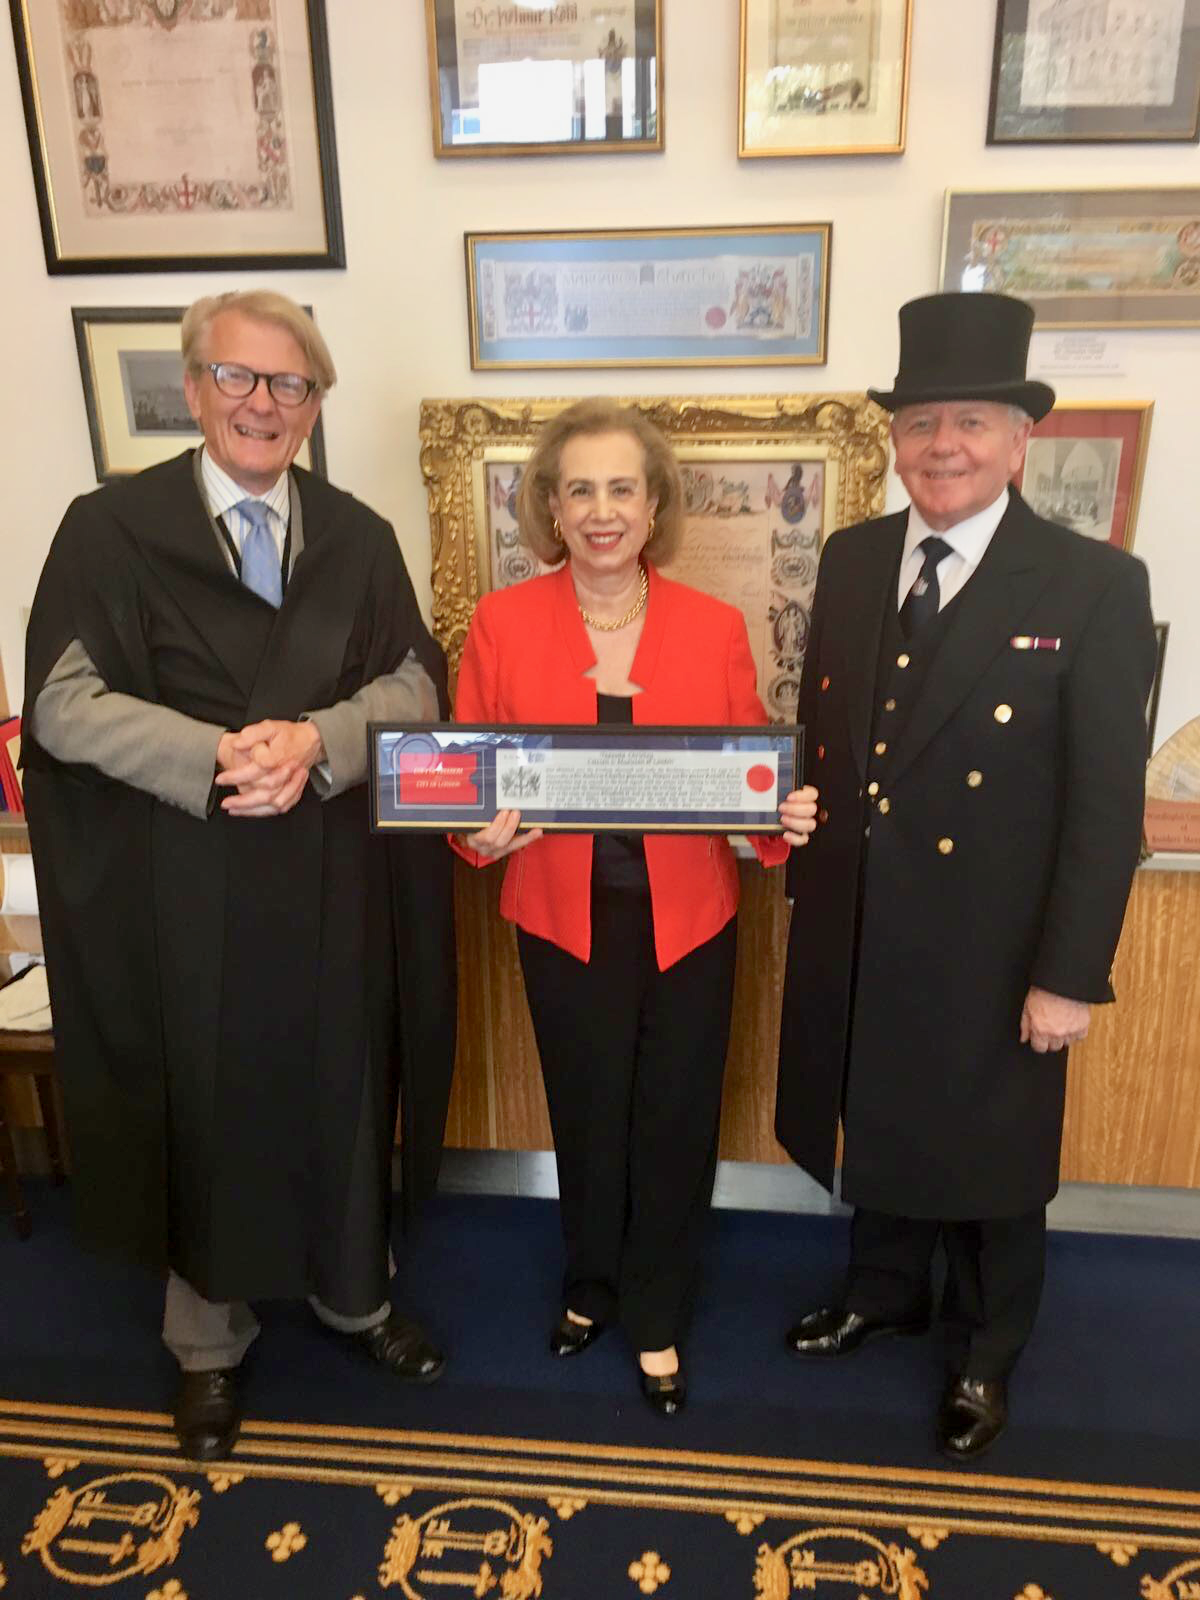 TASOULLA IS GRANTED THE FREEDOM OF THE CITY OF LONDON